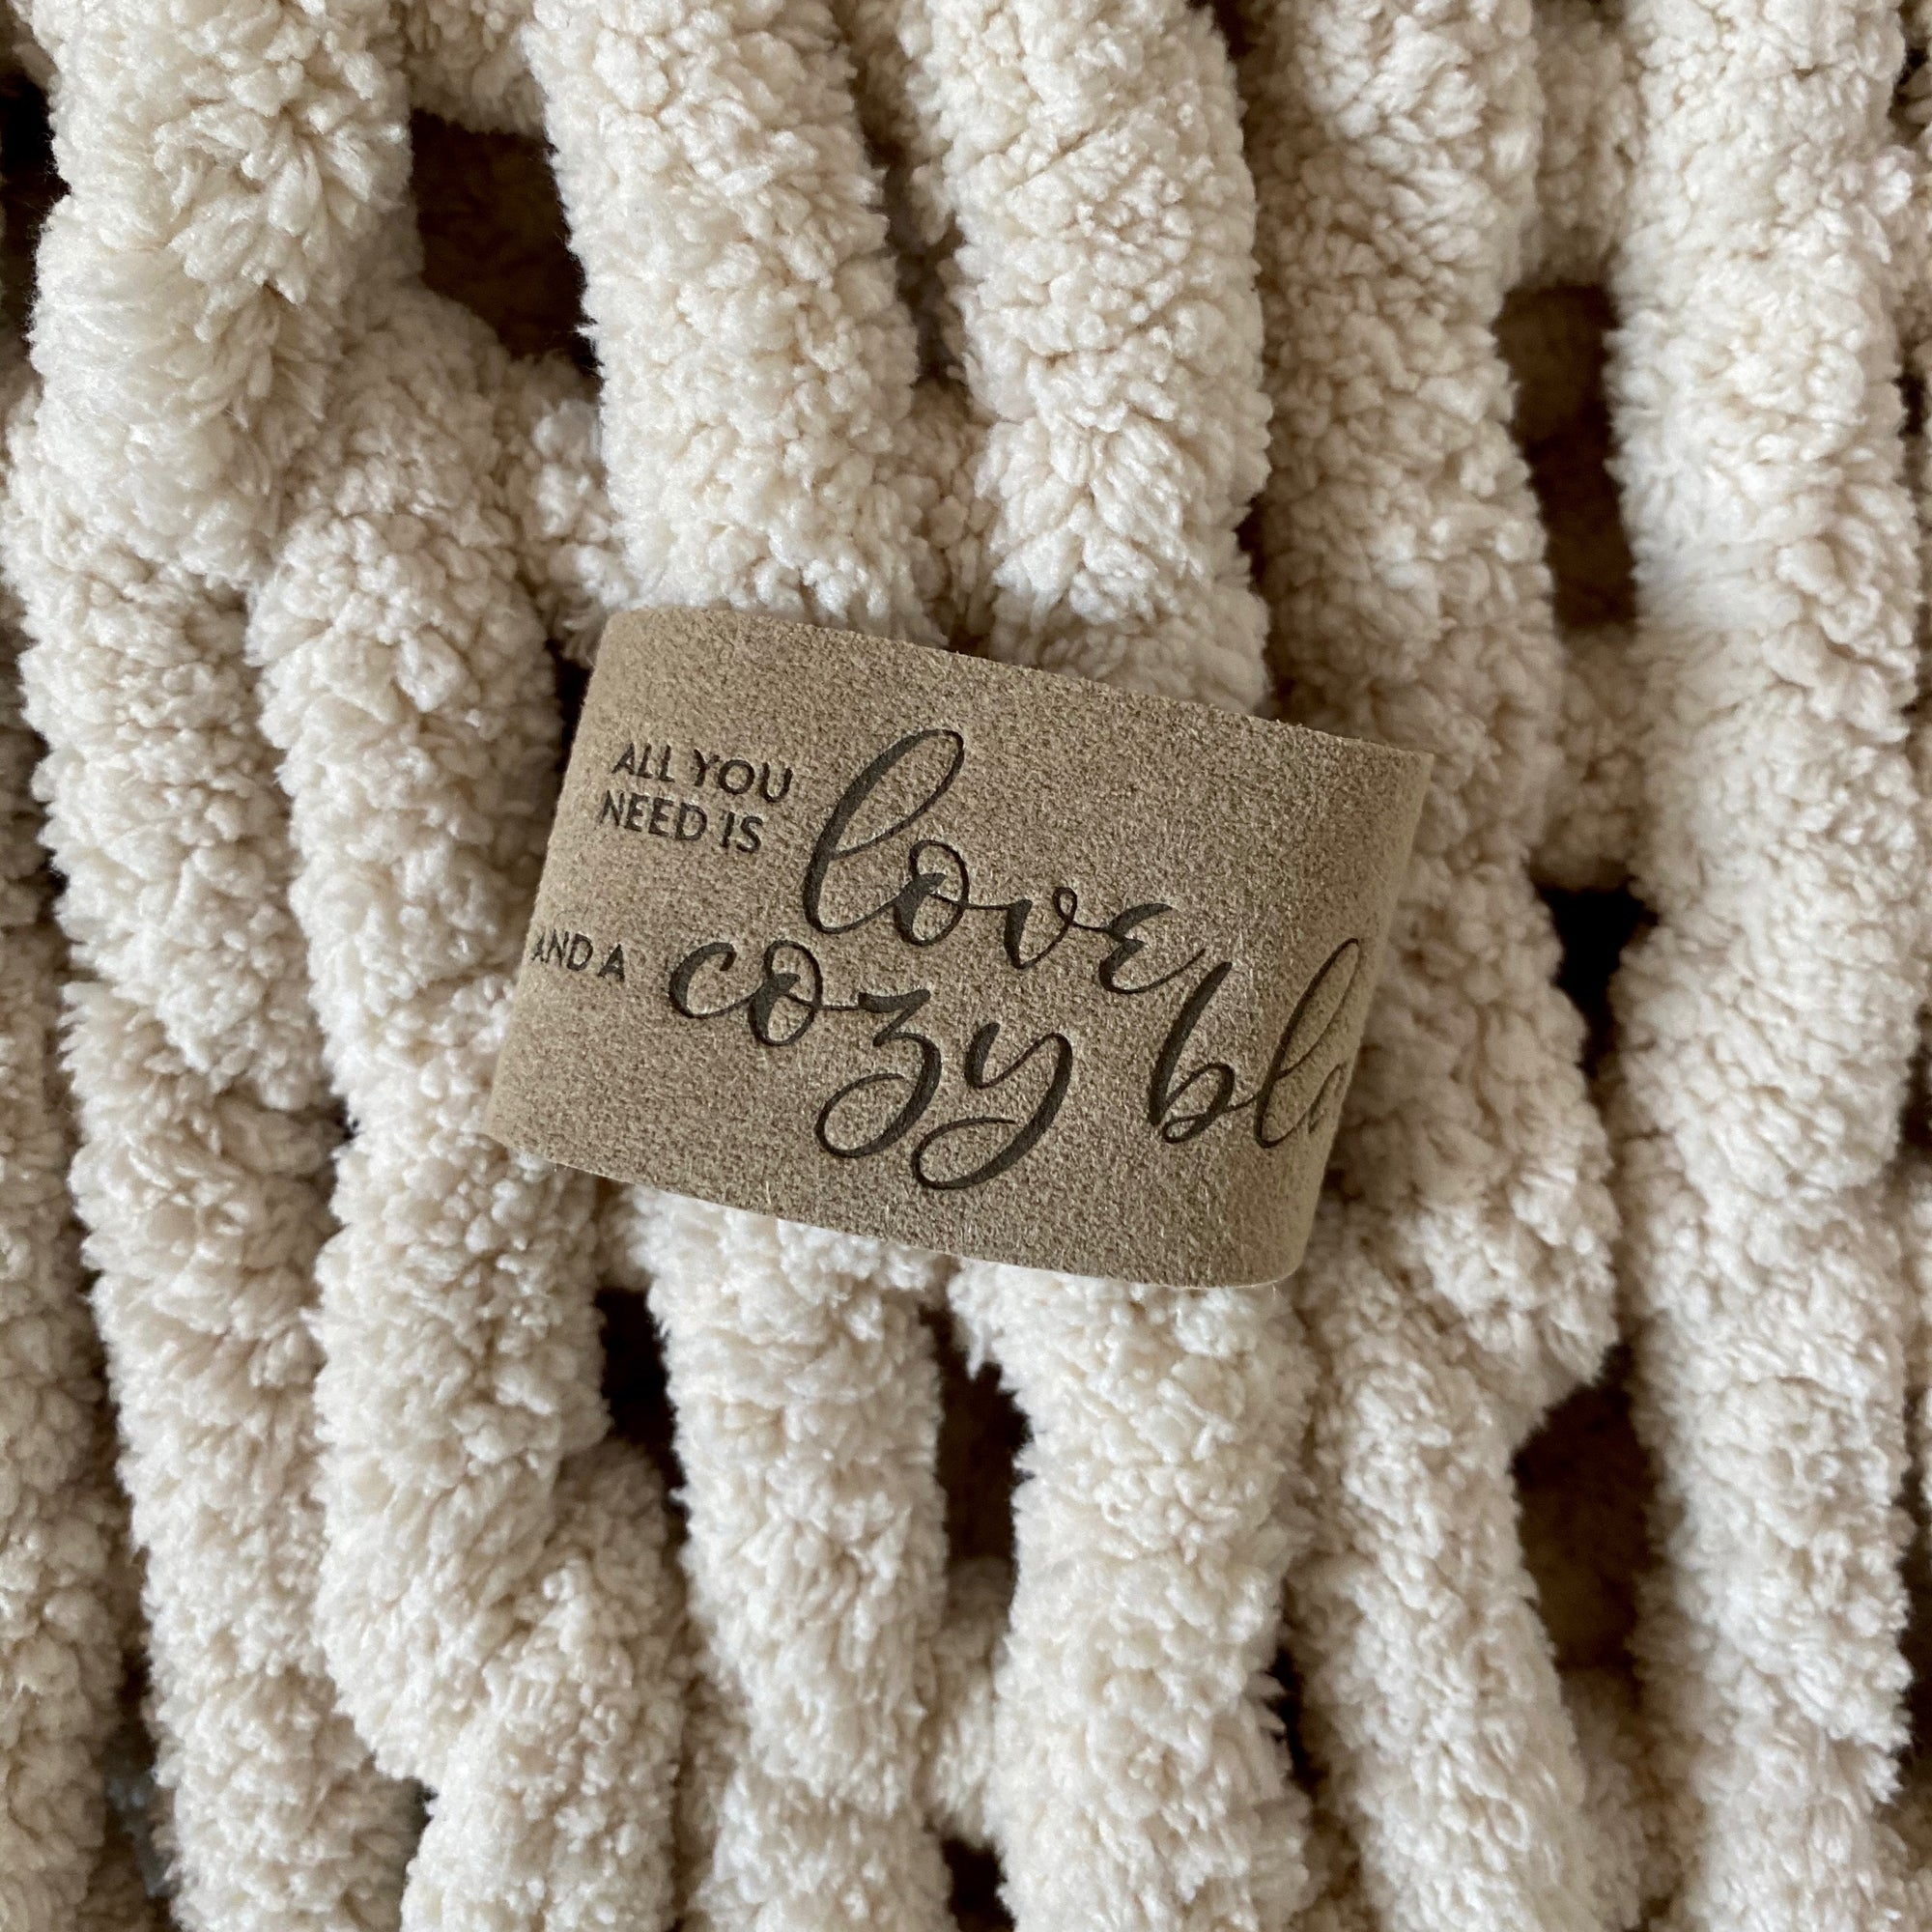 """All you need is love and a cozy blanket."" LoveSnap on Infinite Love Blanket in Oat"